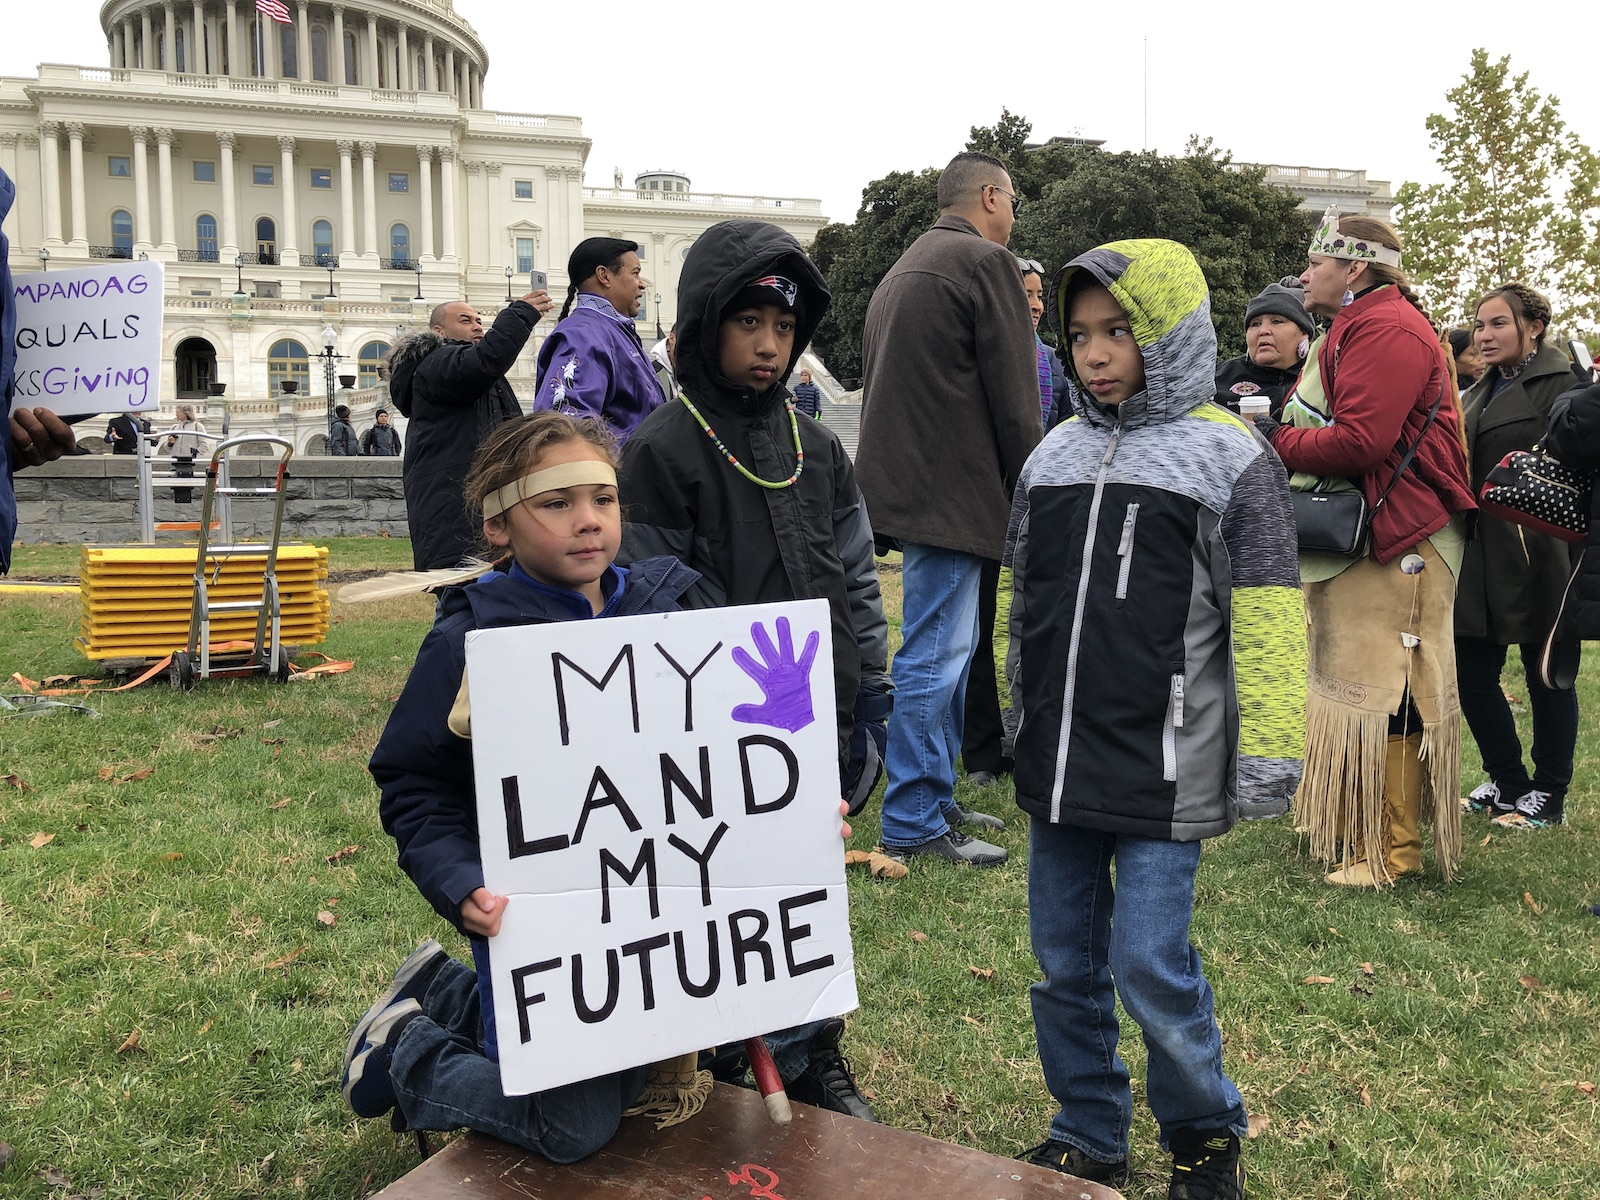 Mashpee Wampanoag Tribe awaits action on bill to keep reservation in trust